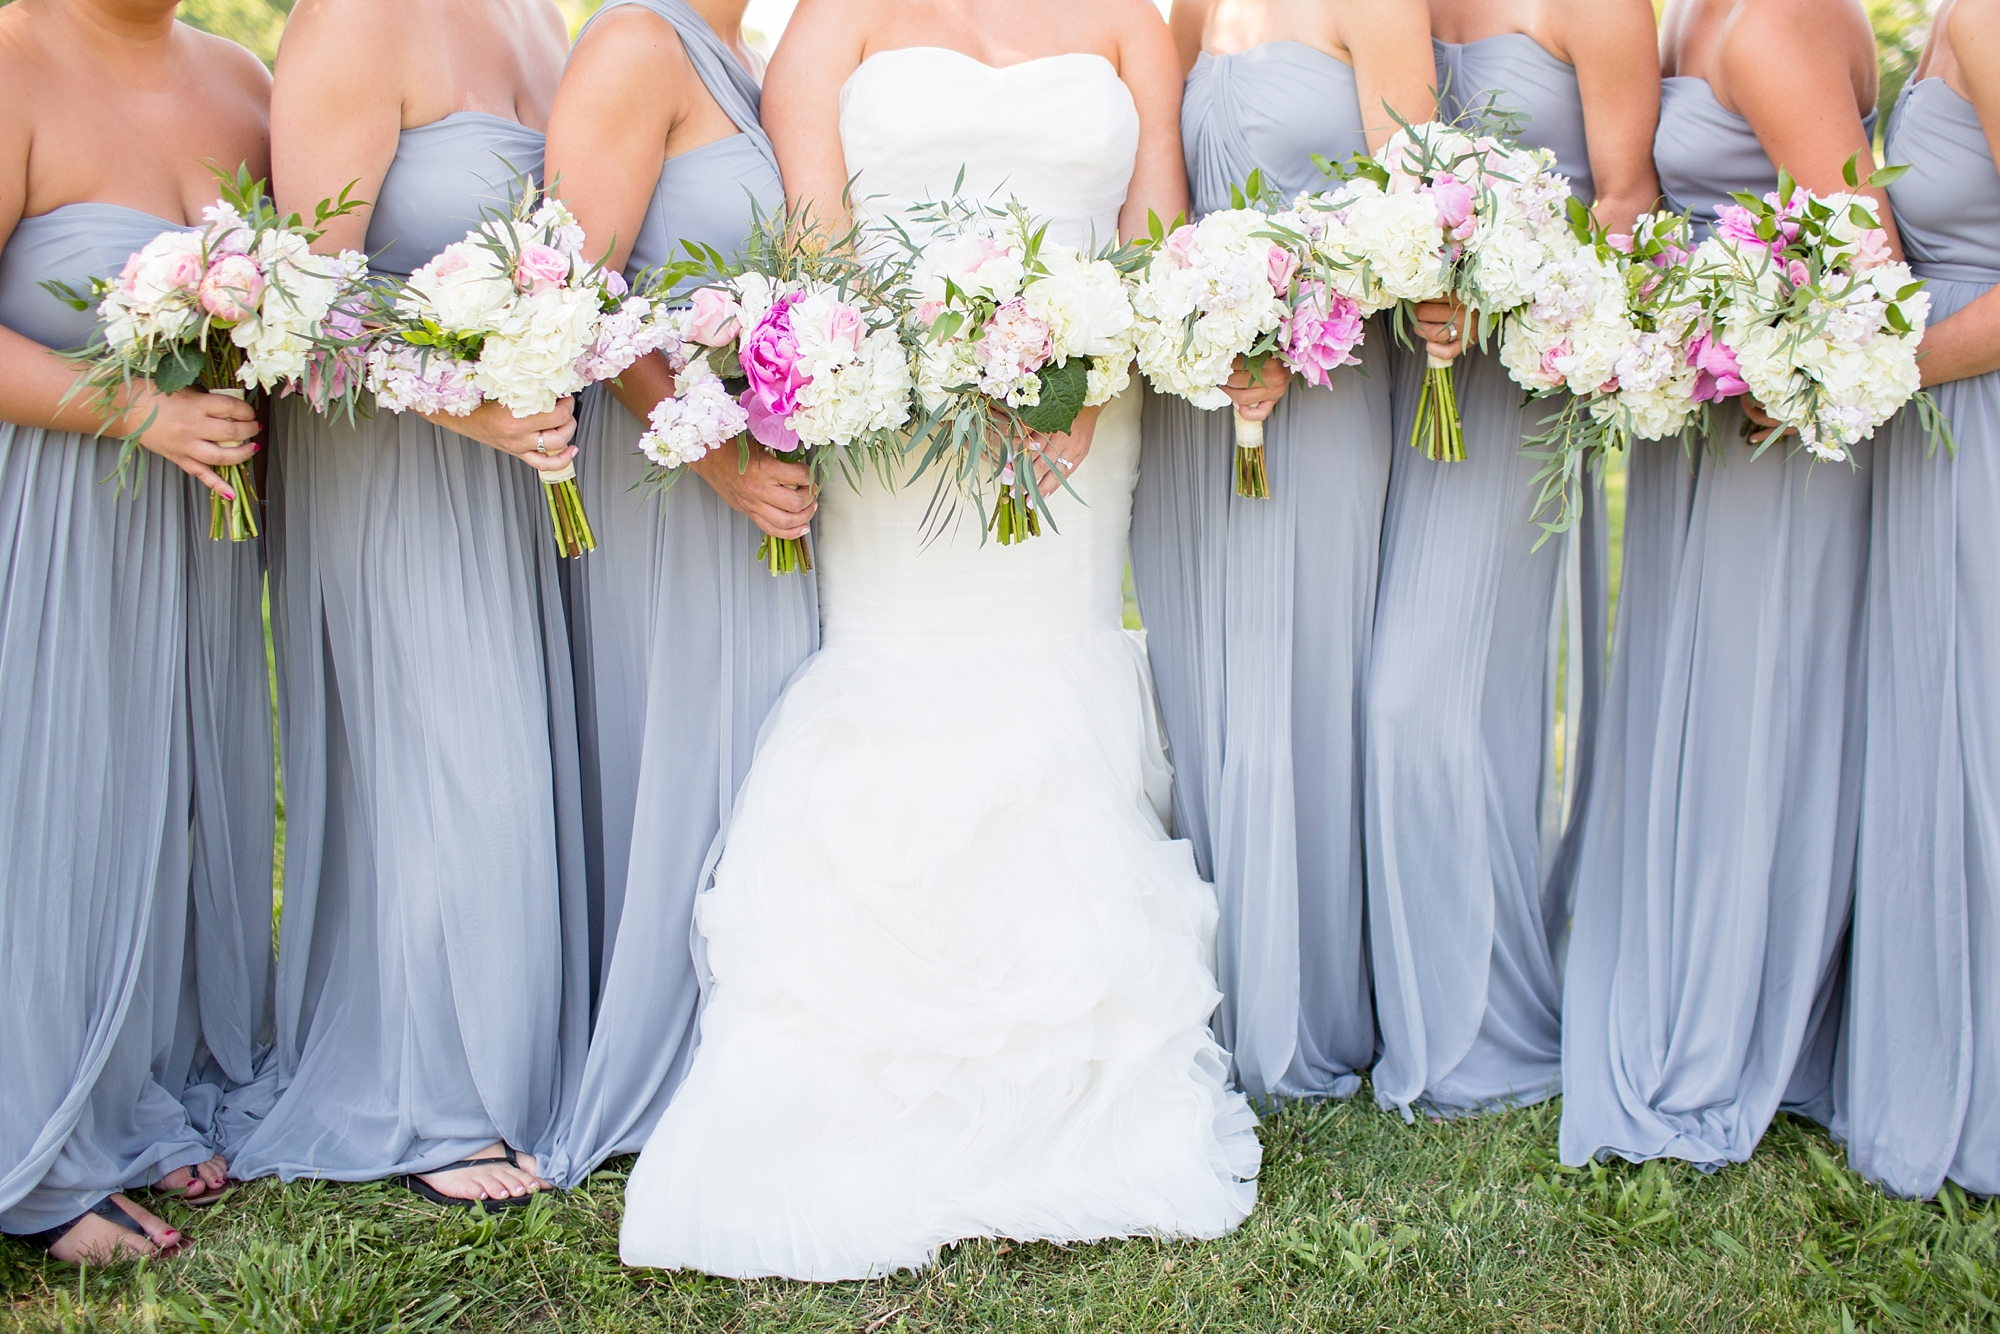 Peterson 4-Bridal Party-369_anna grace photography milford connecticut destination wedding photographer Great River Country Club photo.jpg